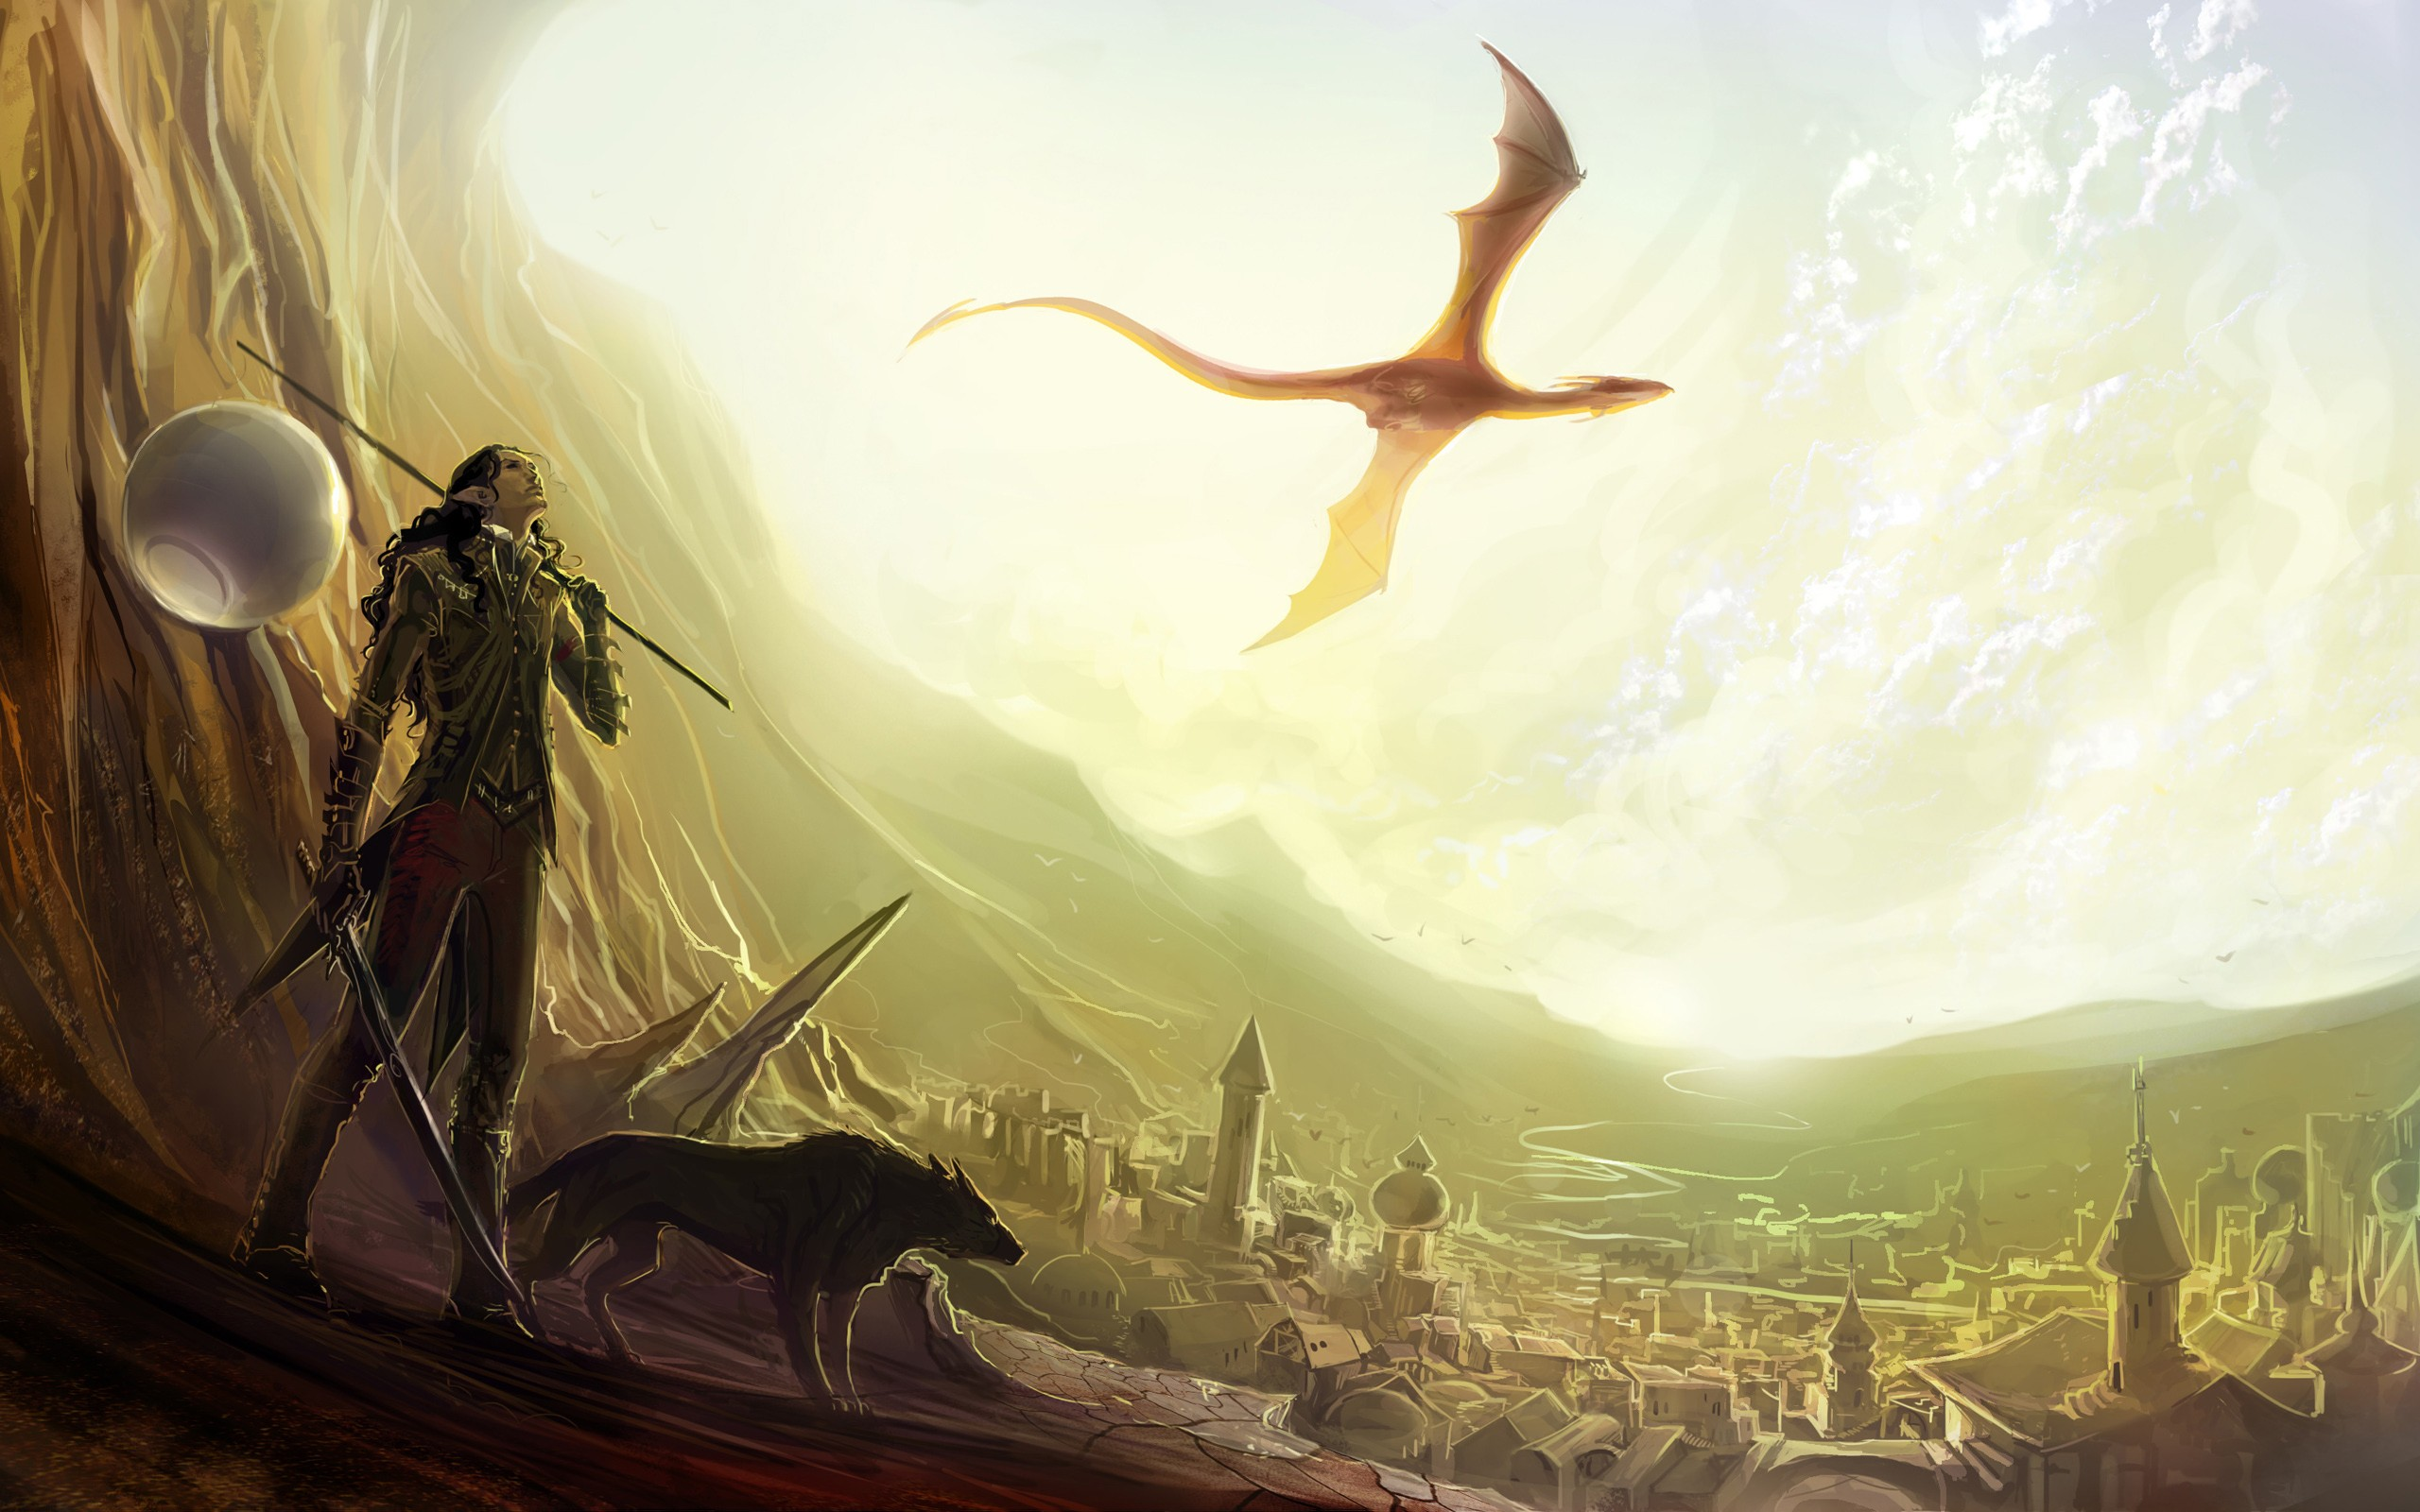 wings cityscapes dragons flying weapons fantasy art armor